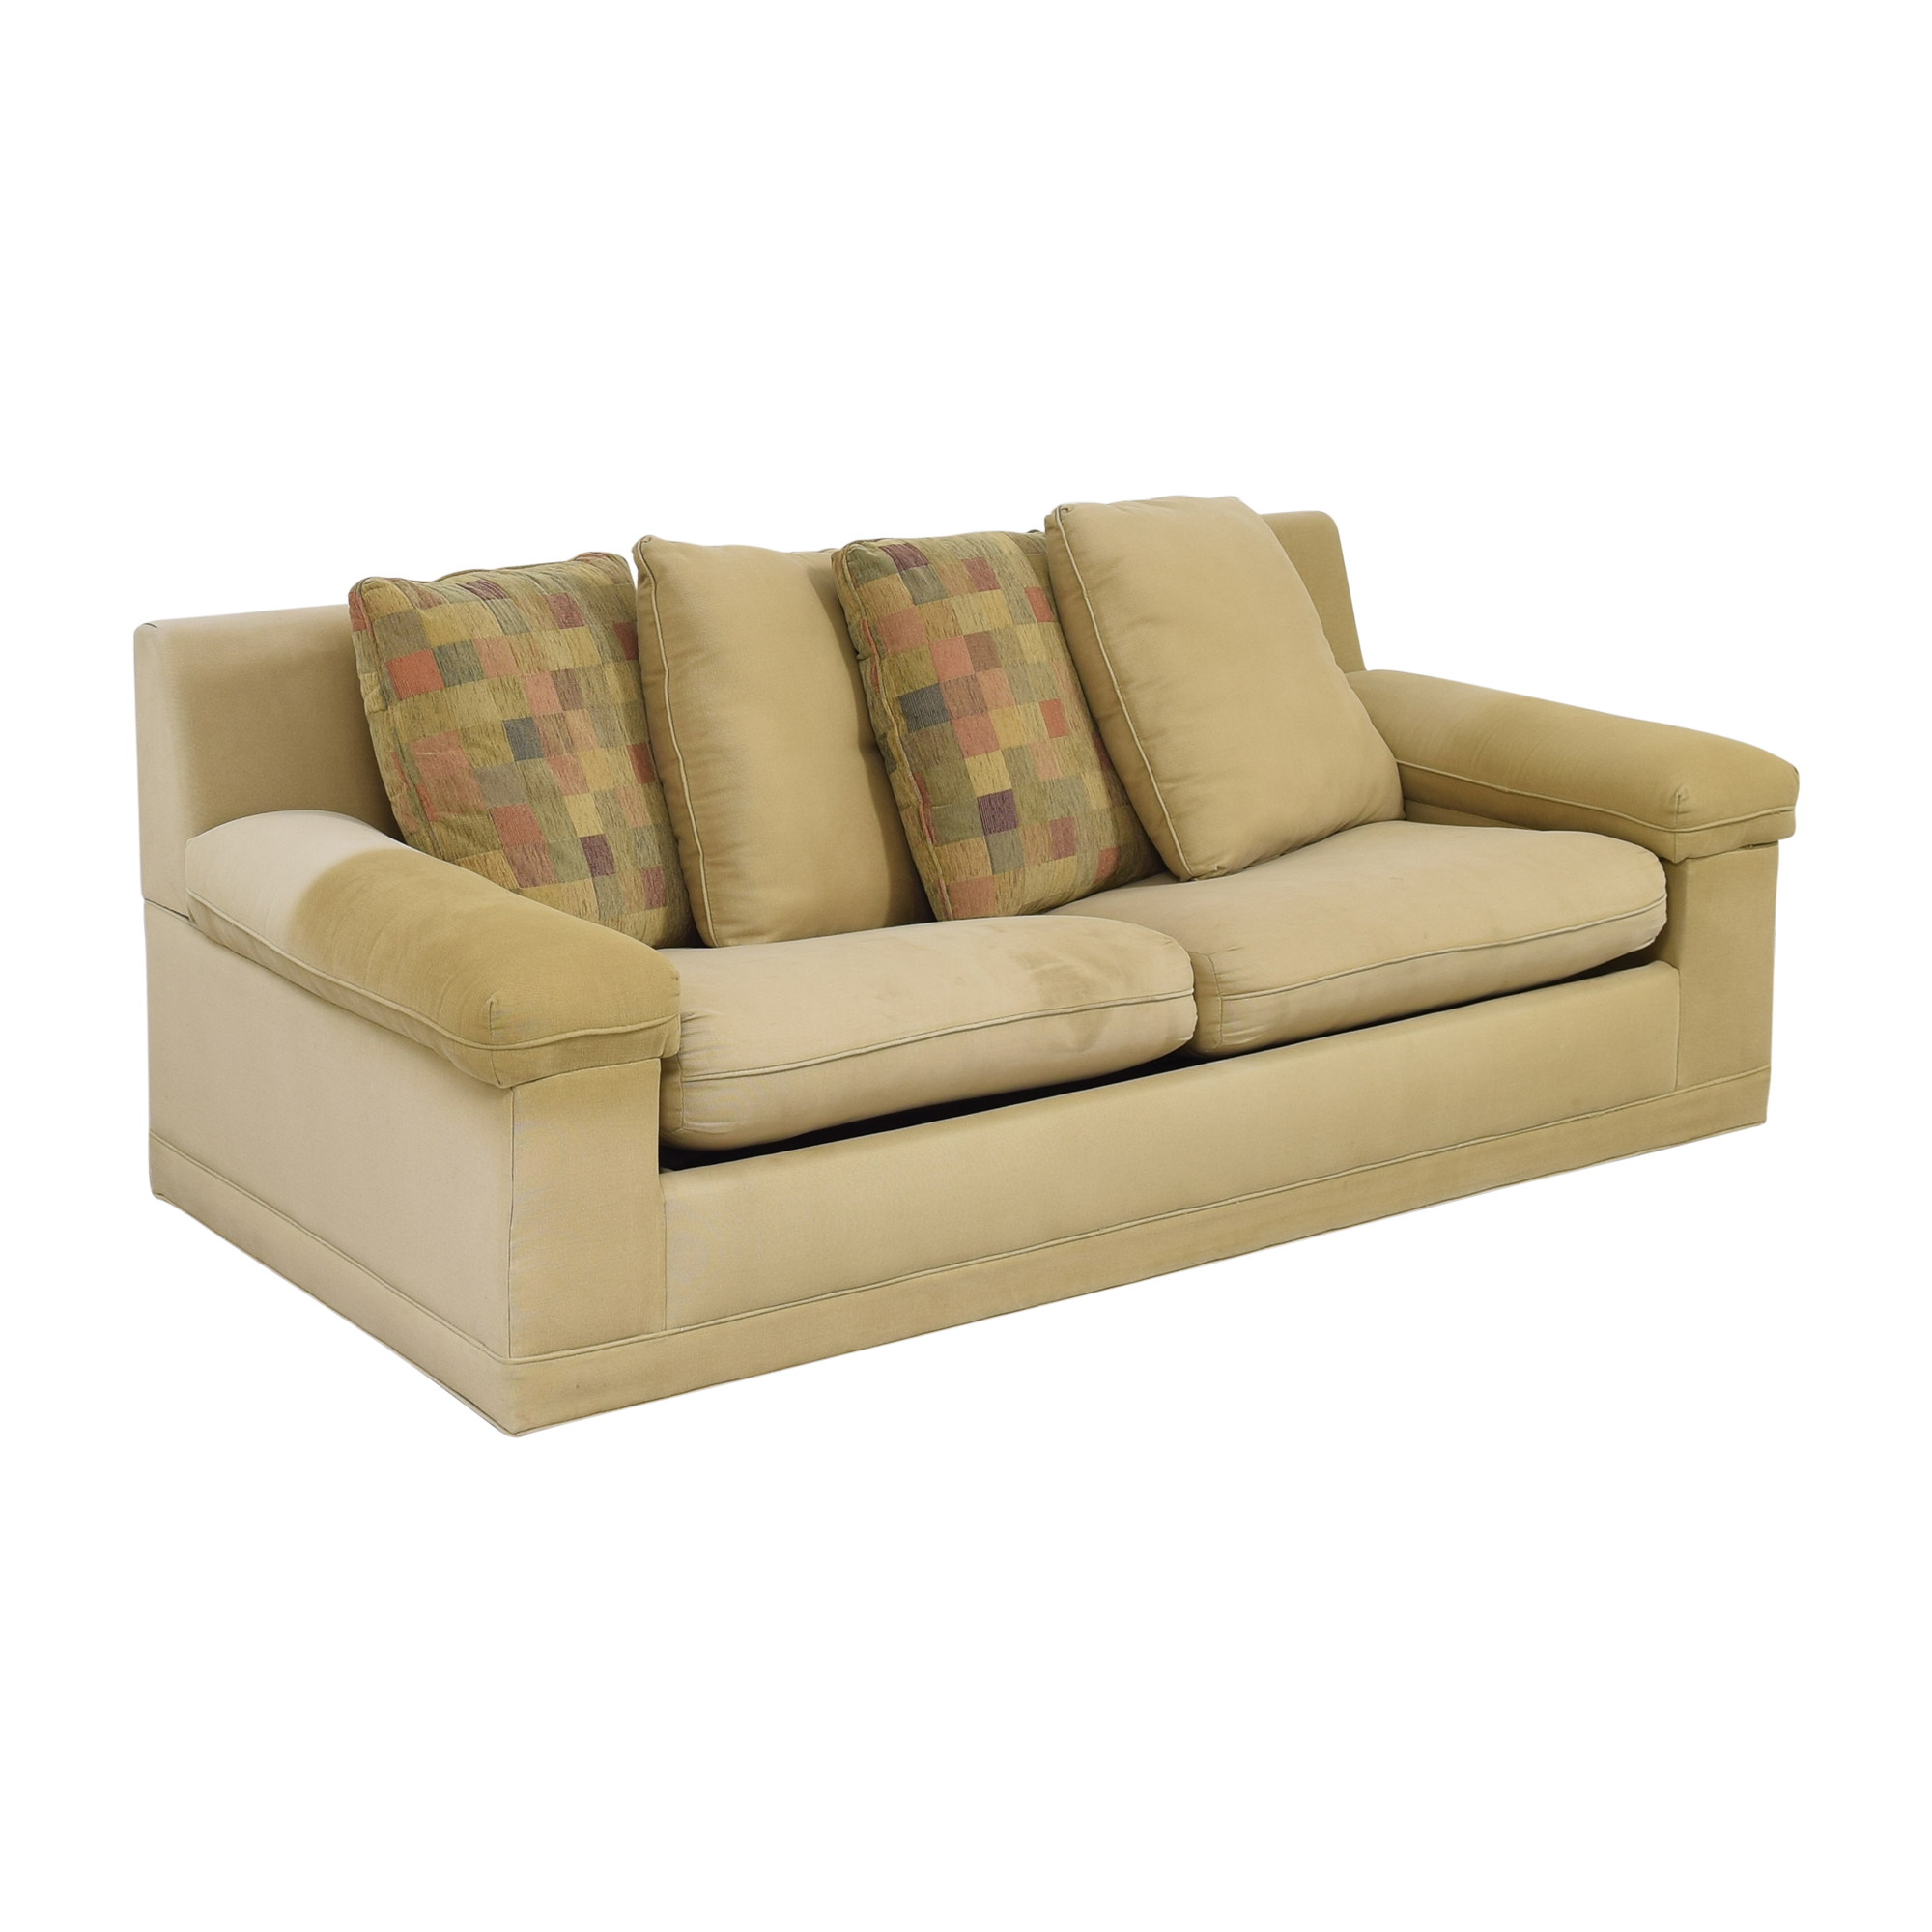 buy Cameo Collection Cameo Collection Two Seat Sleeper Sofa online